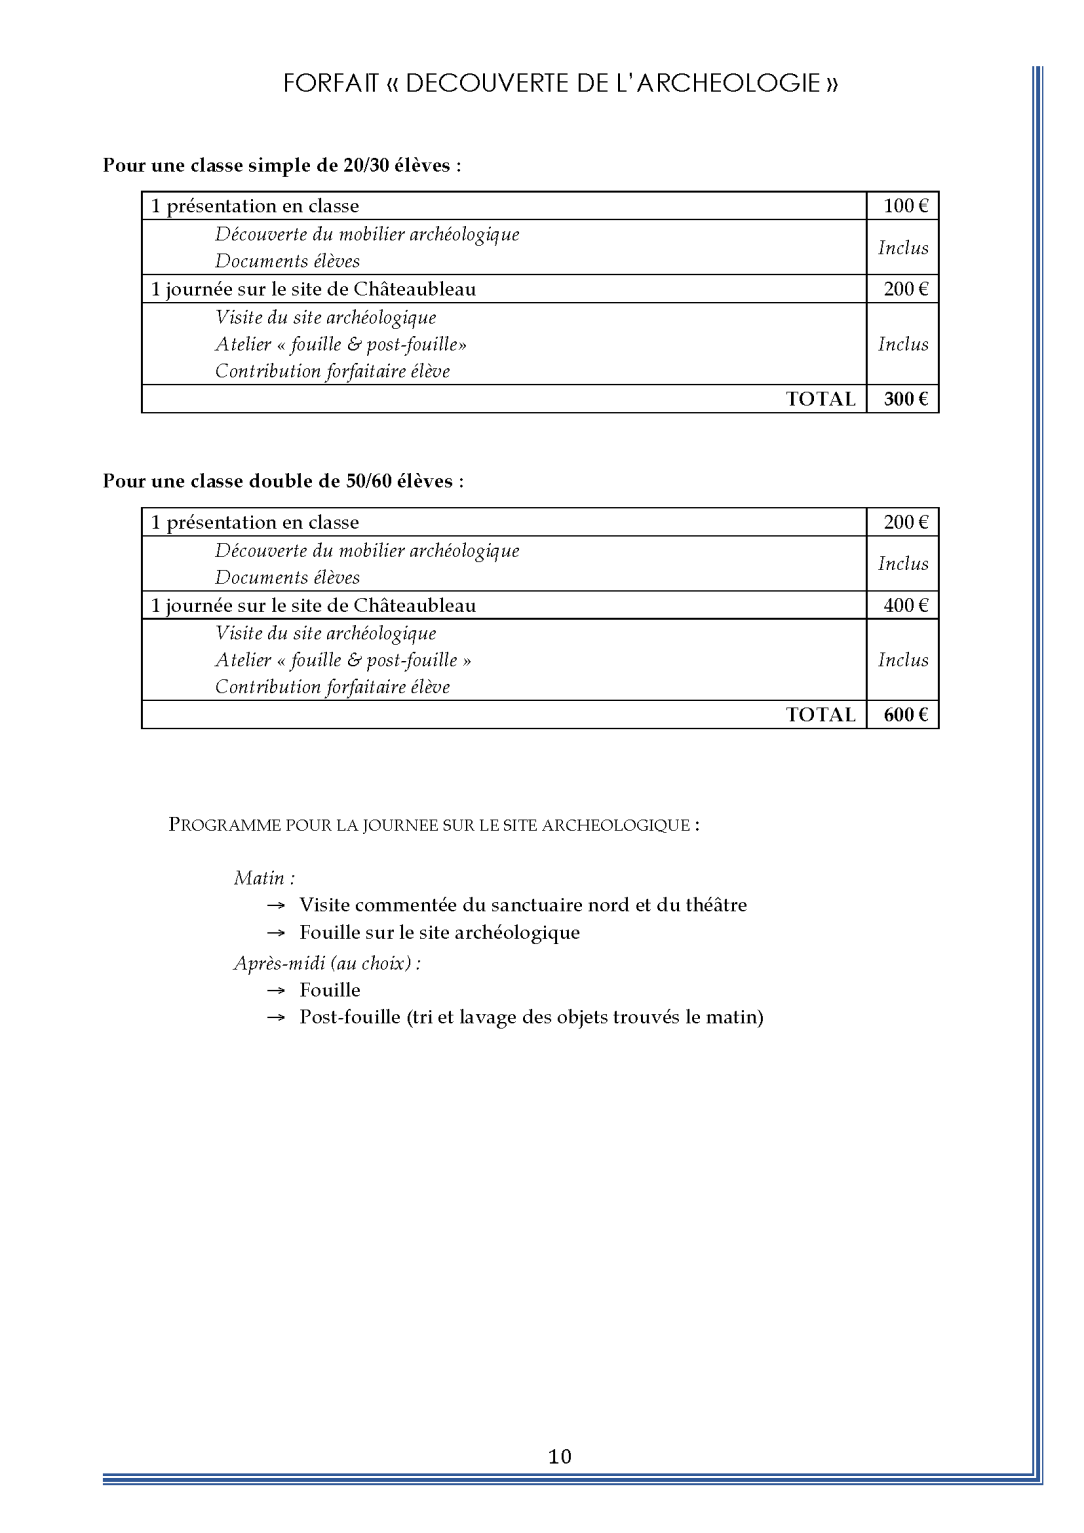 CATALOGUE DES ATELIERS 2015_2016_Page_10.png